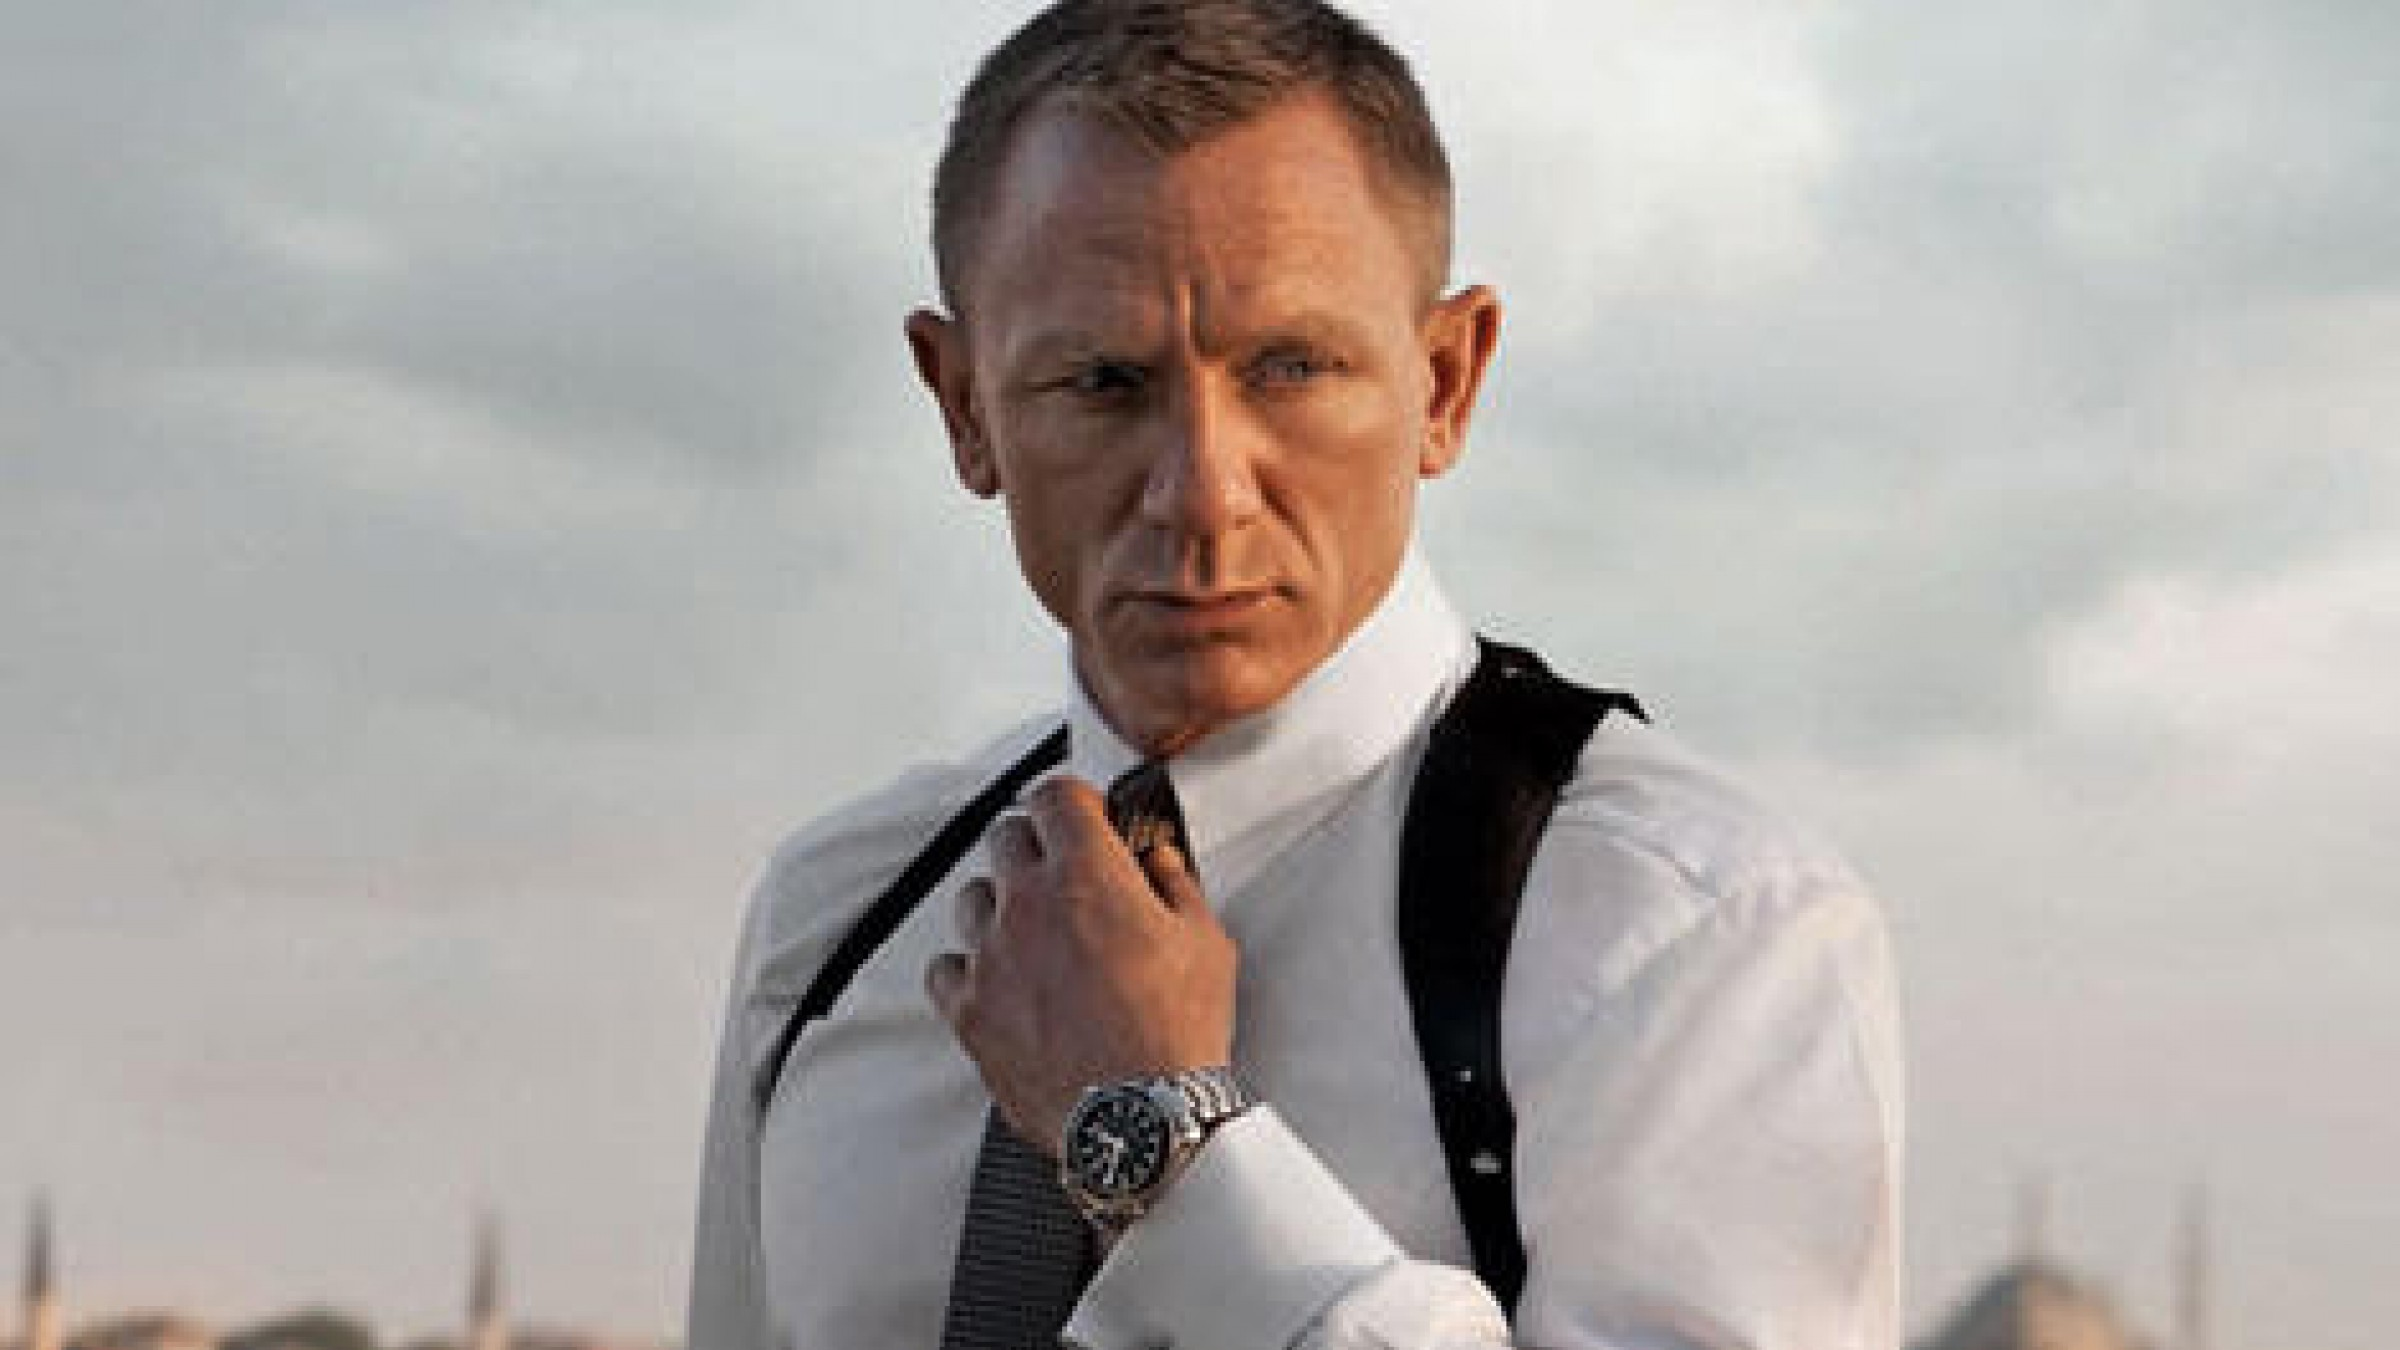 On Set with James Bond: Behind the Scenes Footage from 'Skyfall'